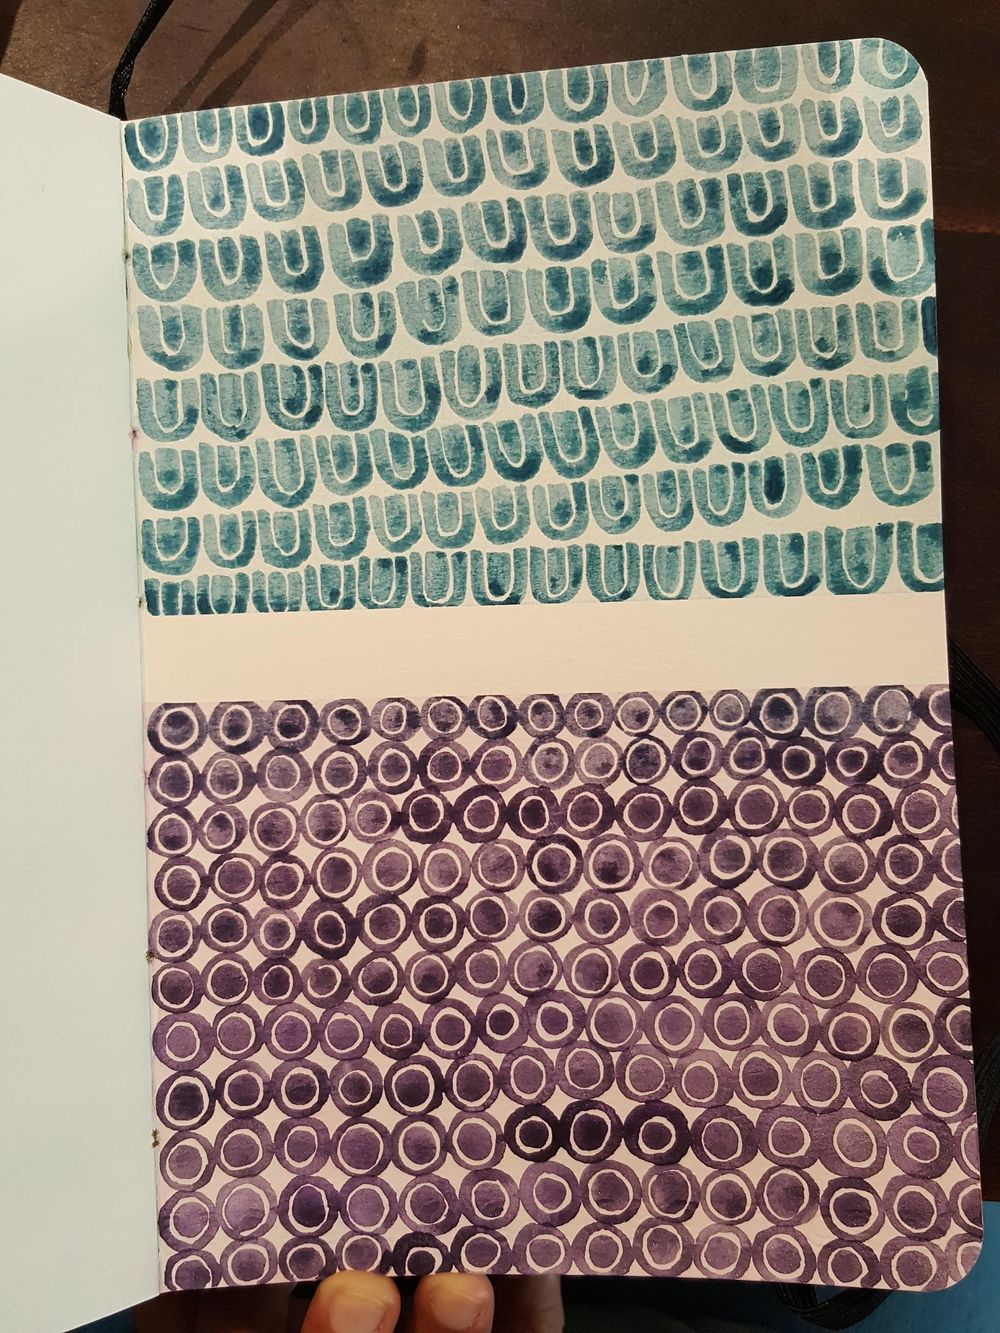 Pattern and texture - image 1 - student project